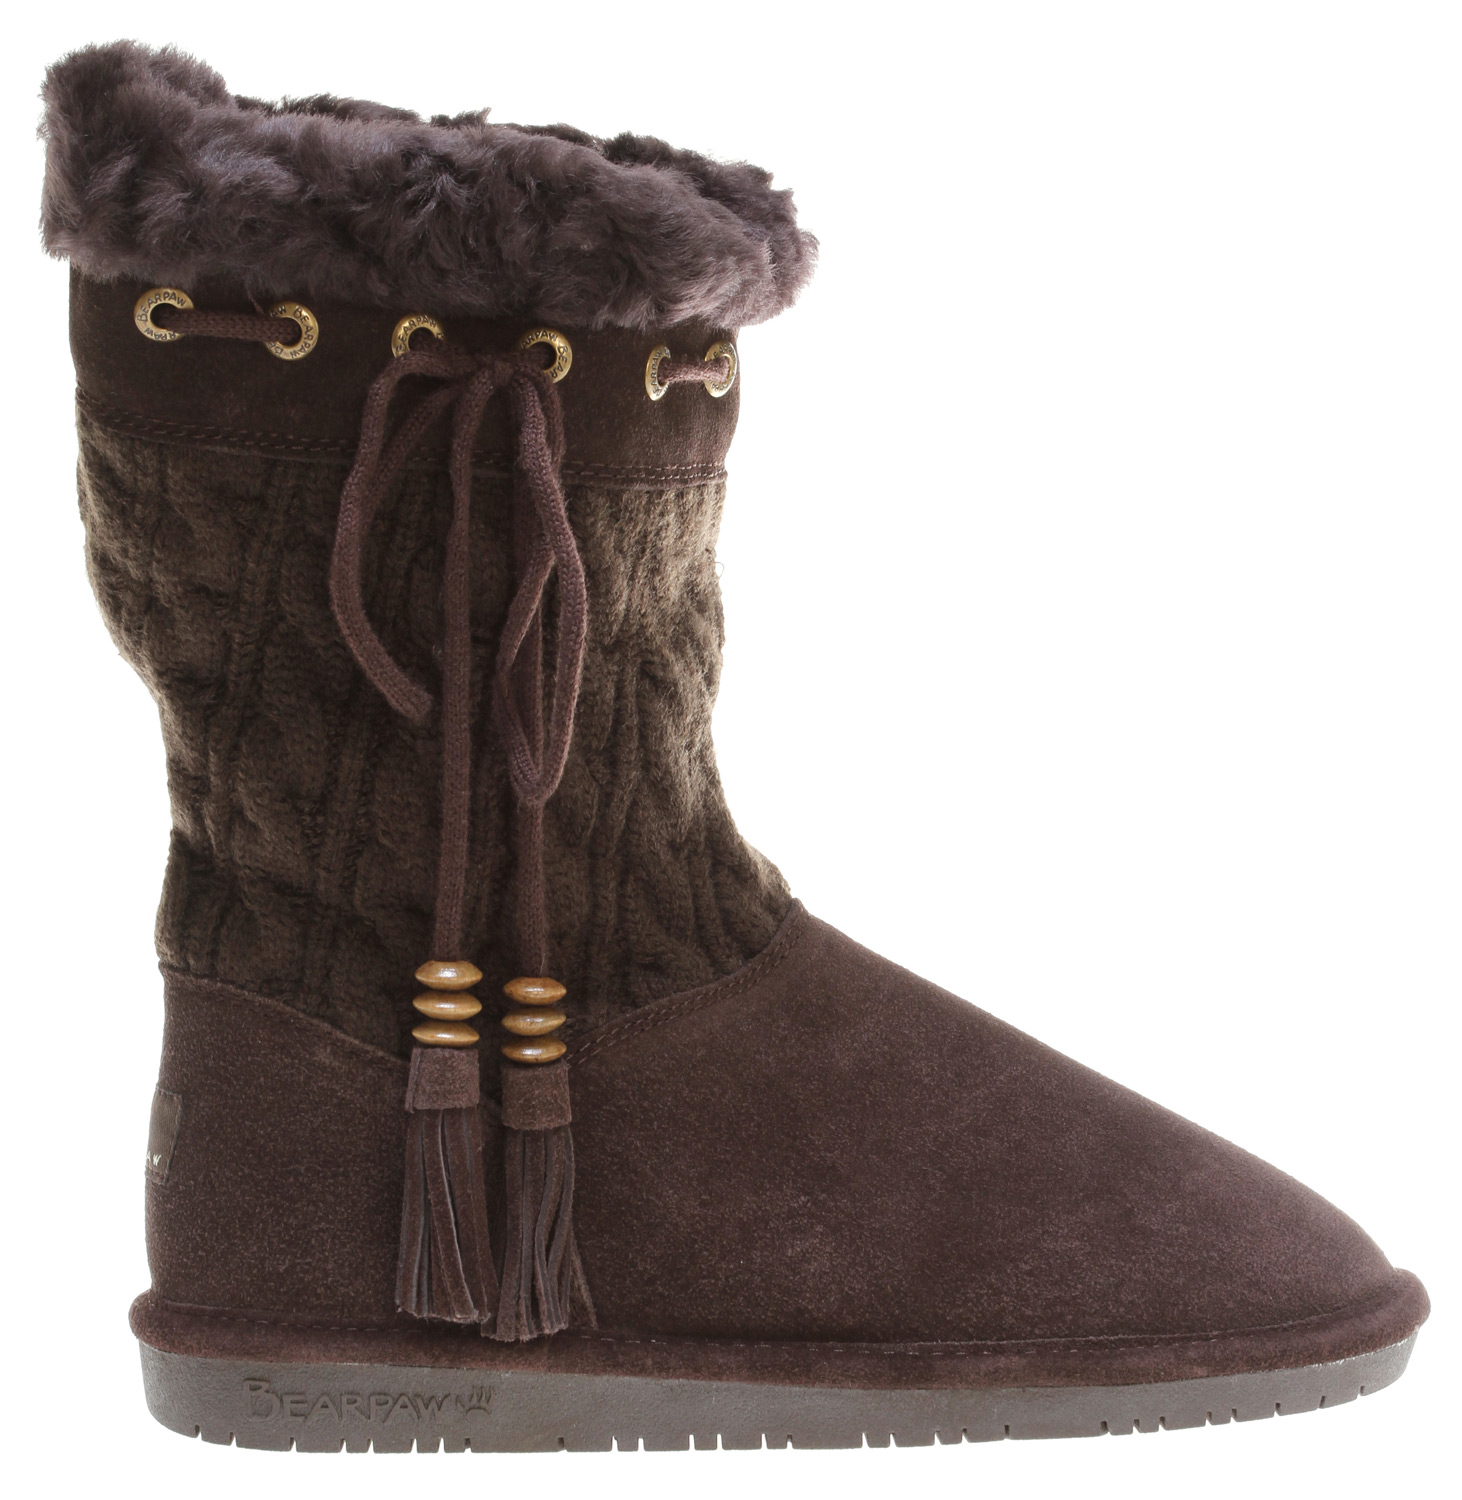 Key Features of the Bearpaw Constantine Solid Knit Casual Boots: Cow suede and cable knit pattern Top collar tie detail trimmed with suede tassels and wood beads Sheepskin and wool blend lining Sheepskin footbed woven label heel logo - $54.95